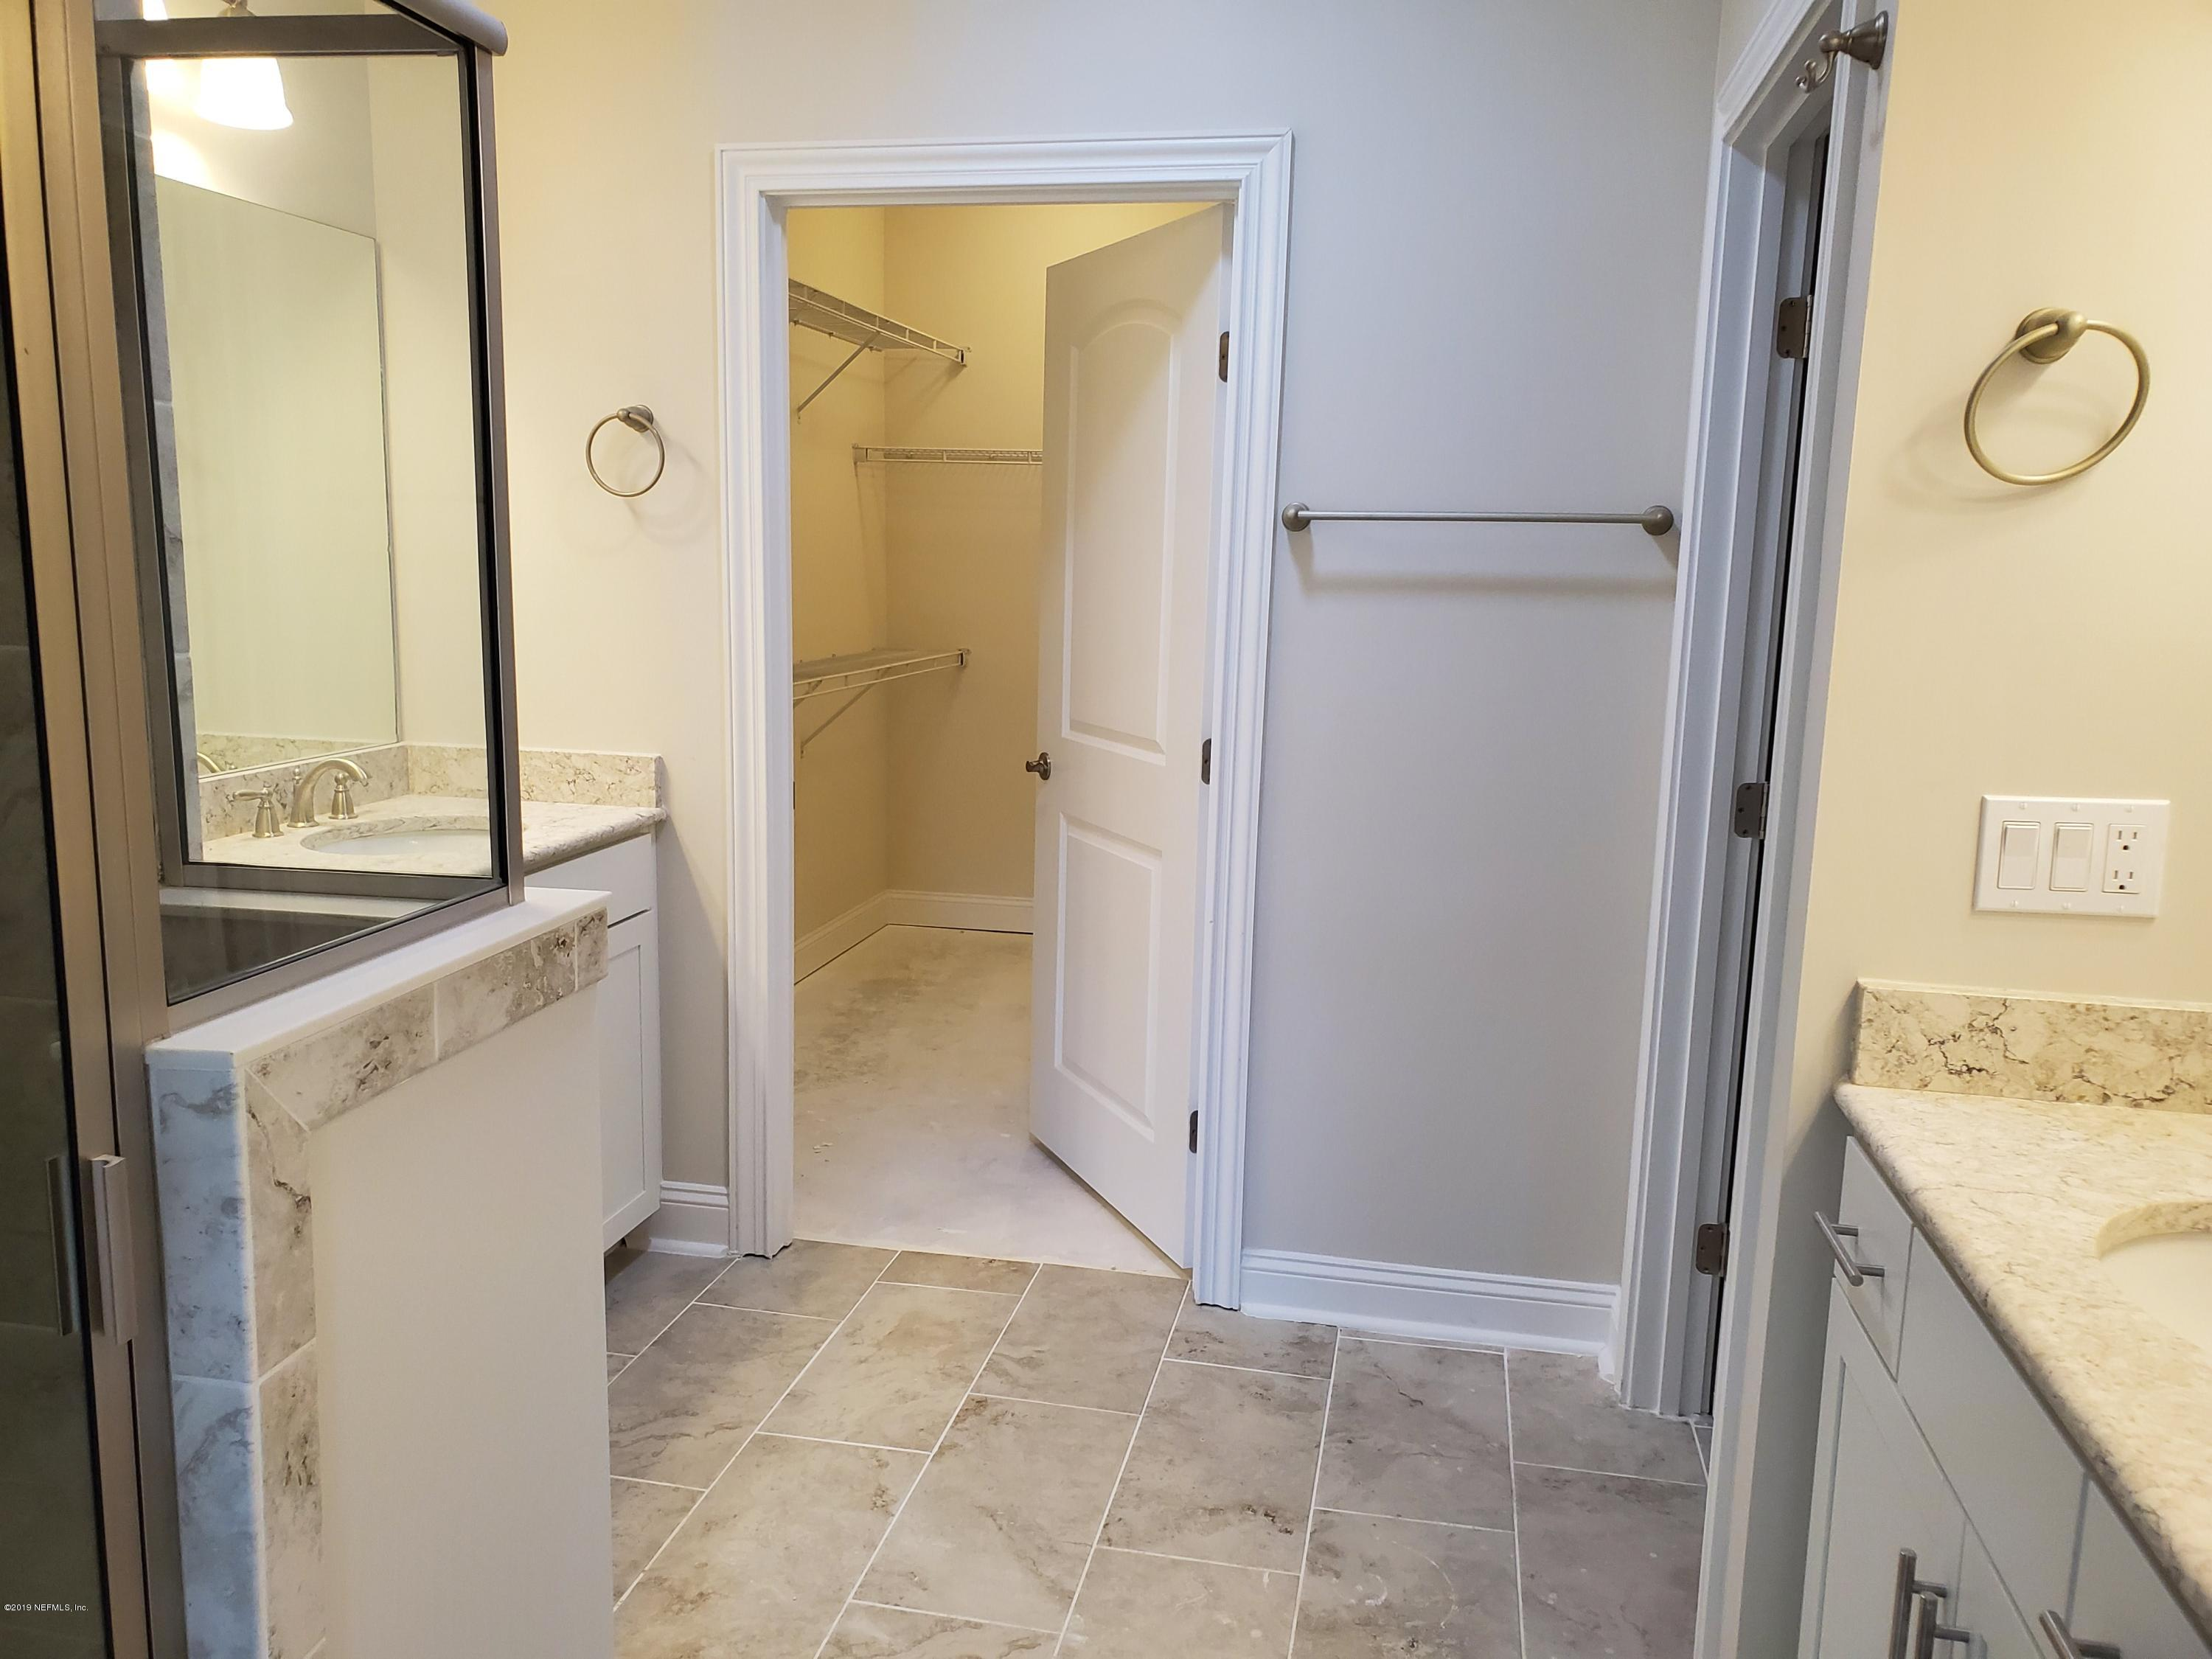 431 SELOY- ST AUGUSTINE- FLORIDA 32084, 2 Bedrooms Bedrooms, ,2 BathroomsBathrooms,Condo,For sale,SELOY,1015615